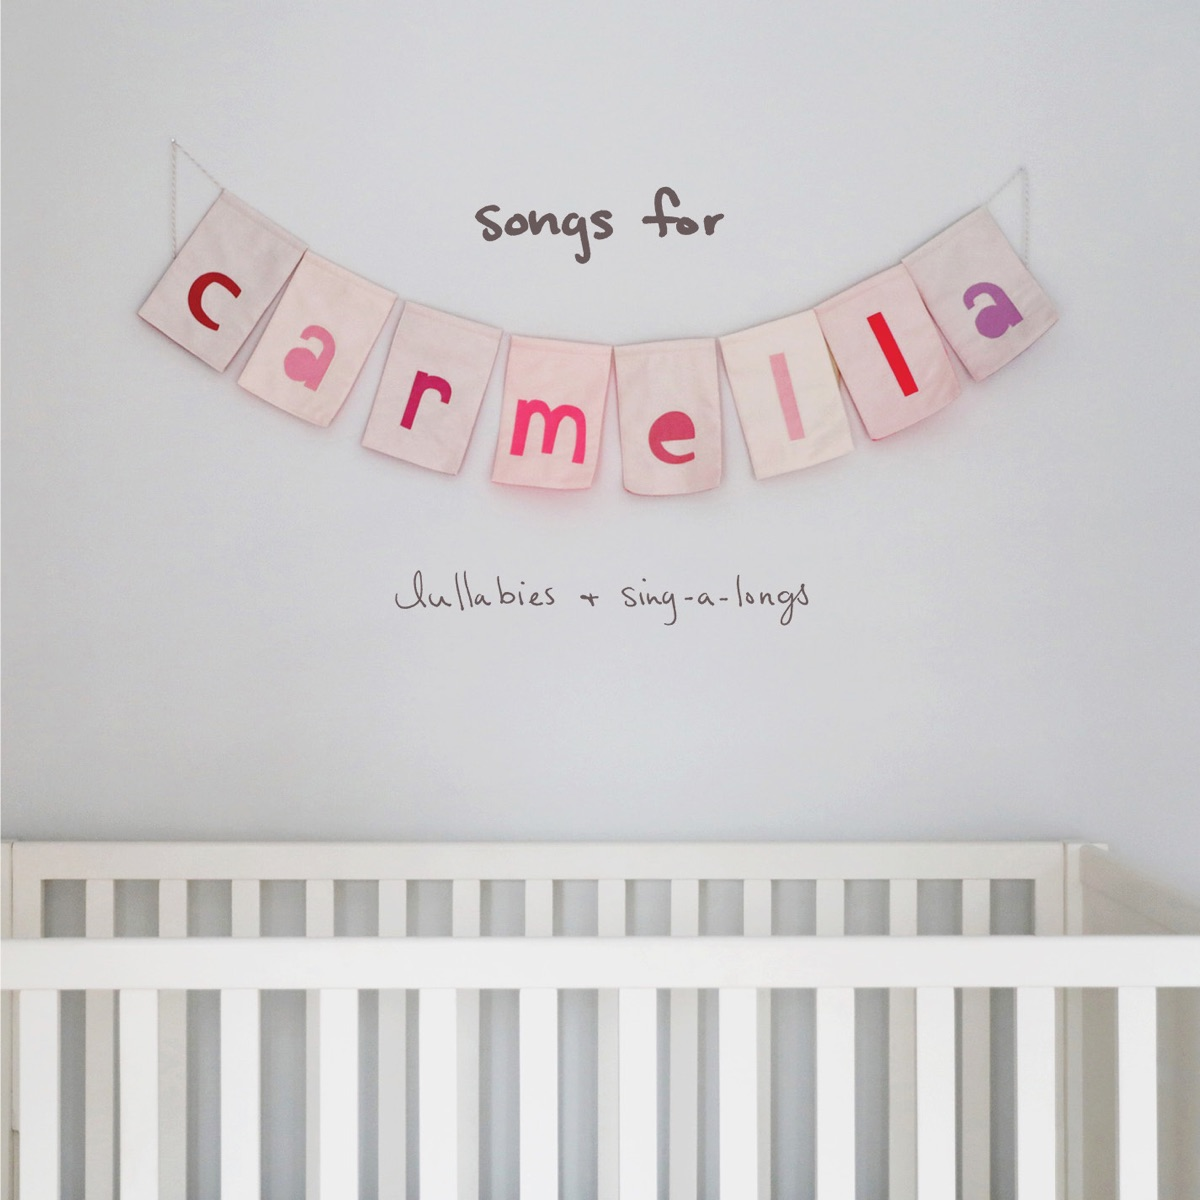 songs for carmella lullabies  sing-a-longs Christina Perri CD cover